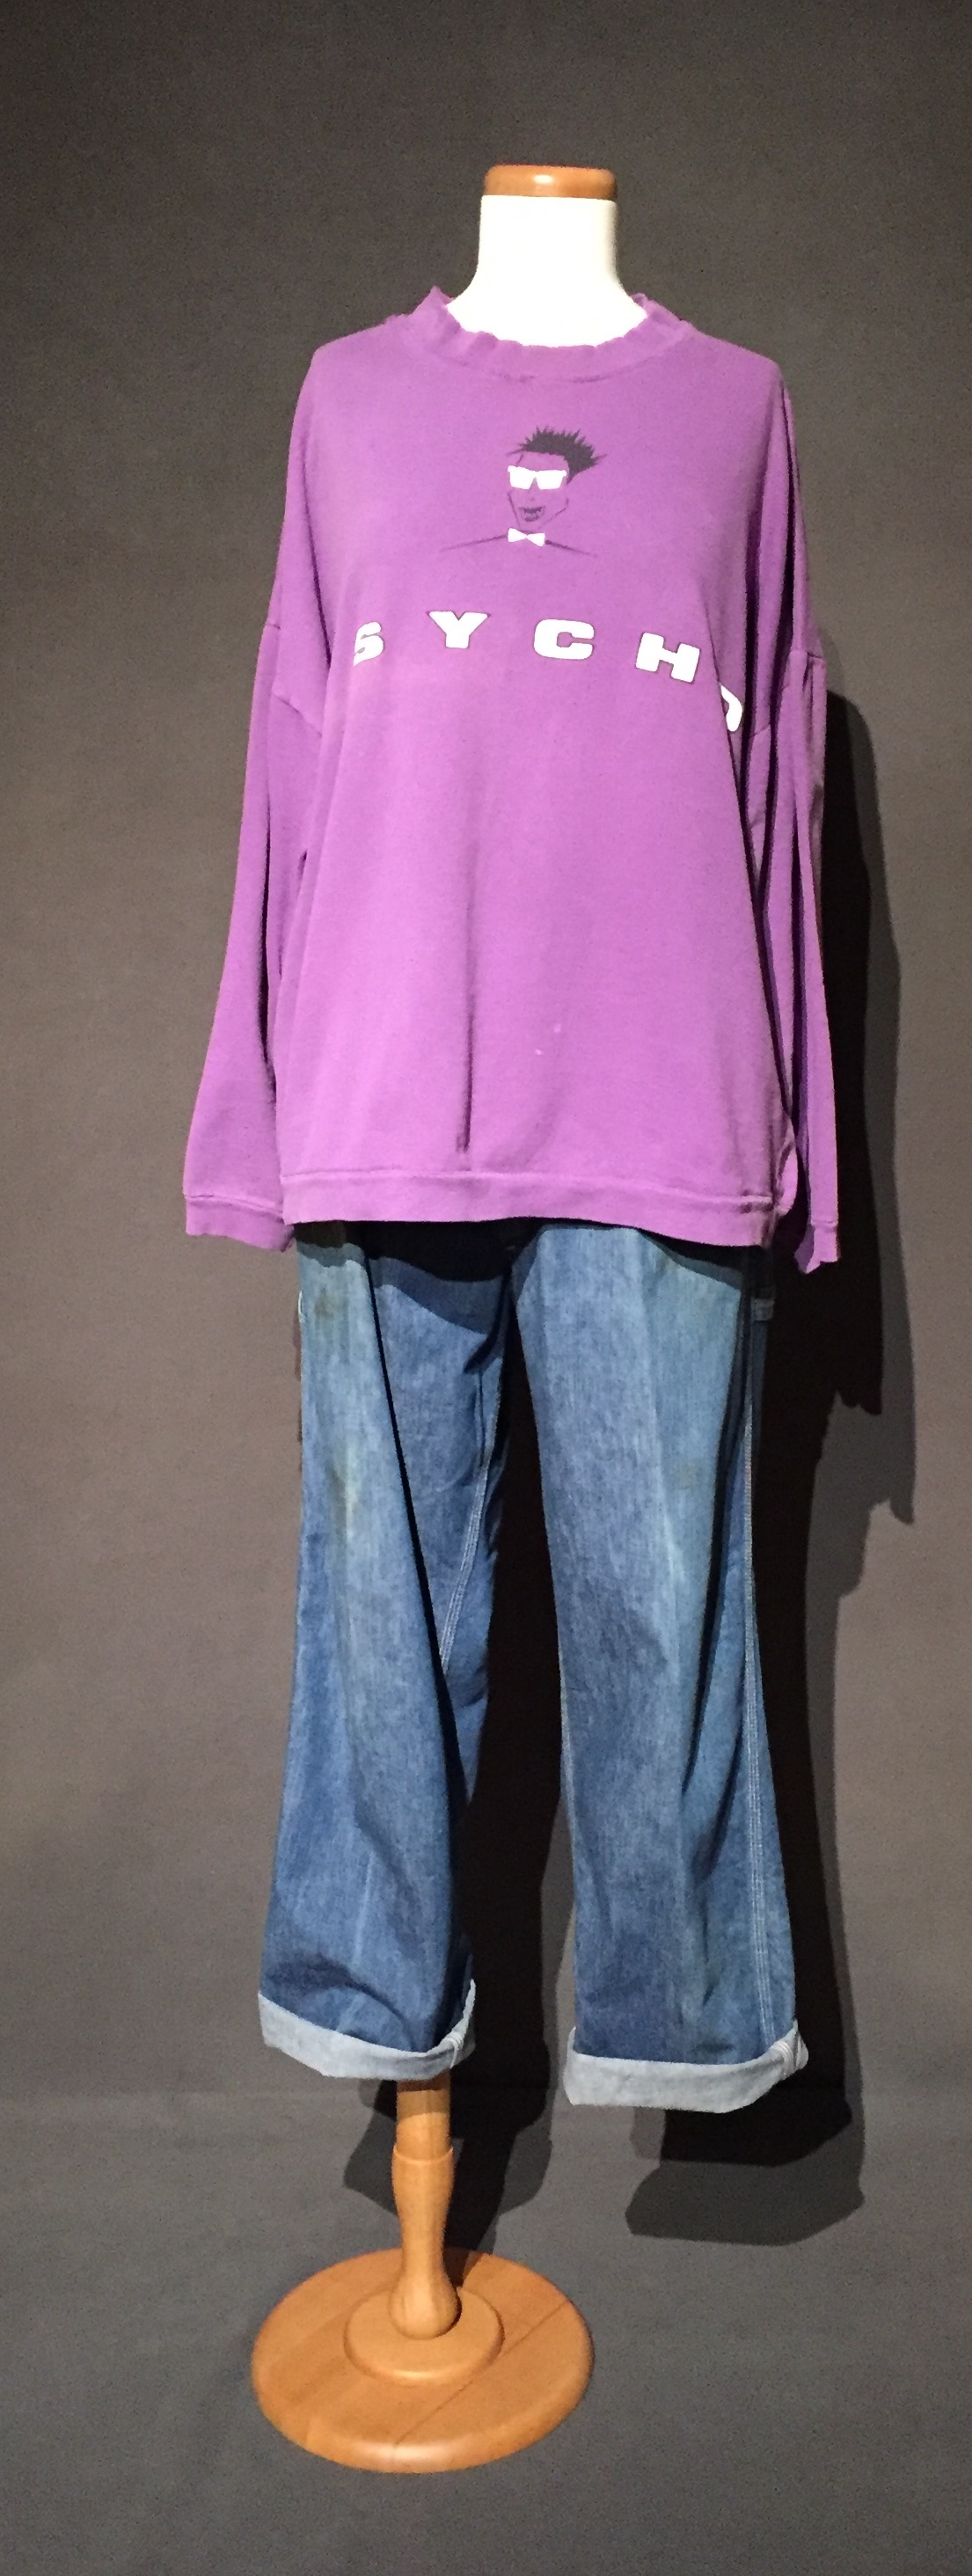 """- Purple """"psycho"""" sweatshirt, denim pants; Owner – Maren, bi-sexual, woman, 41, lives in Iowa; c. 1990sMaren explained that she """"physically presented pretty butch."""" This sweatshirt is a garment she wore in high school in the 1990s that she felt was indicative of her sexuality. She related experiences about other garments pictured in the case as well, such as flannels and Doc Martens when she said, """"I was walking with my girlfriend at the time, and I had a bottle thrown at me in Iowa City. I was wearing cut-offs, Doc Martens, a tank top and a flannel over that. I was very clearly identified in their eyes as a lesbian."""" – personal interview with Maren, October 1, 2017"""